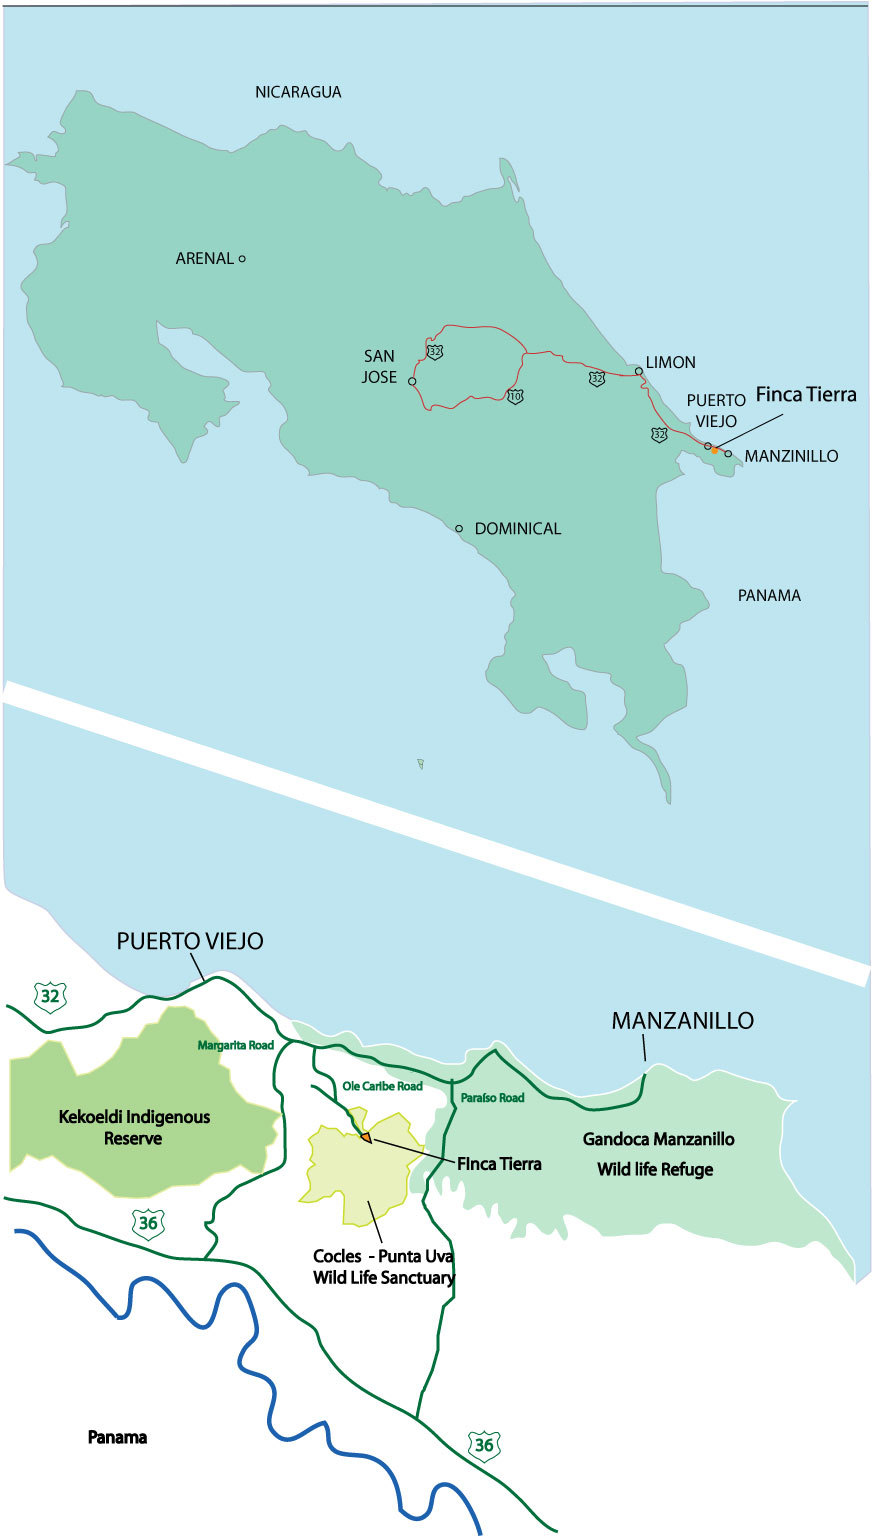 finca-tierra-LOCATION-MAP.jpg